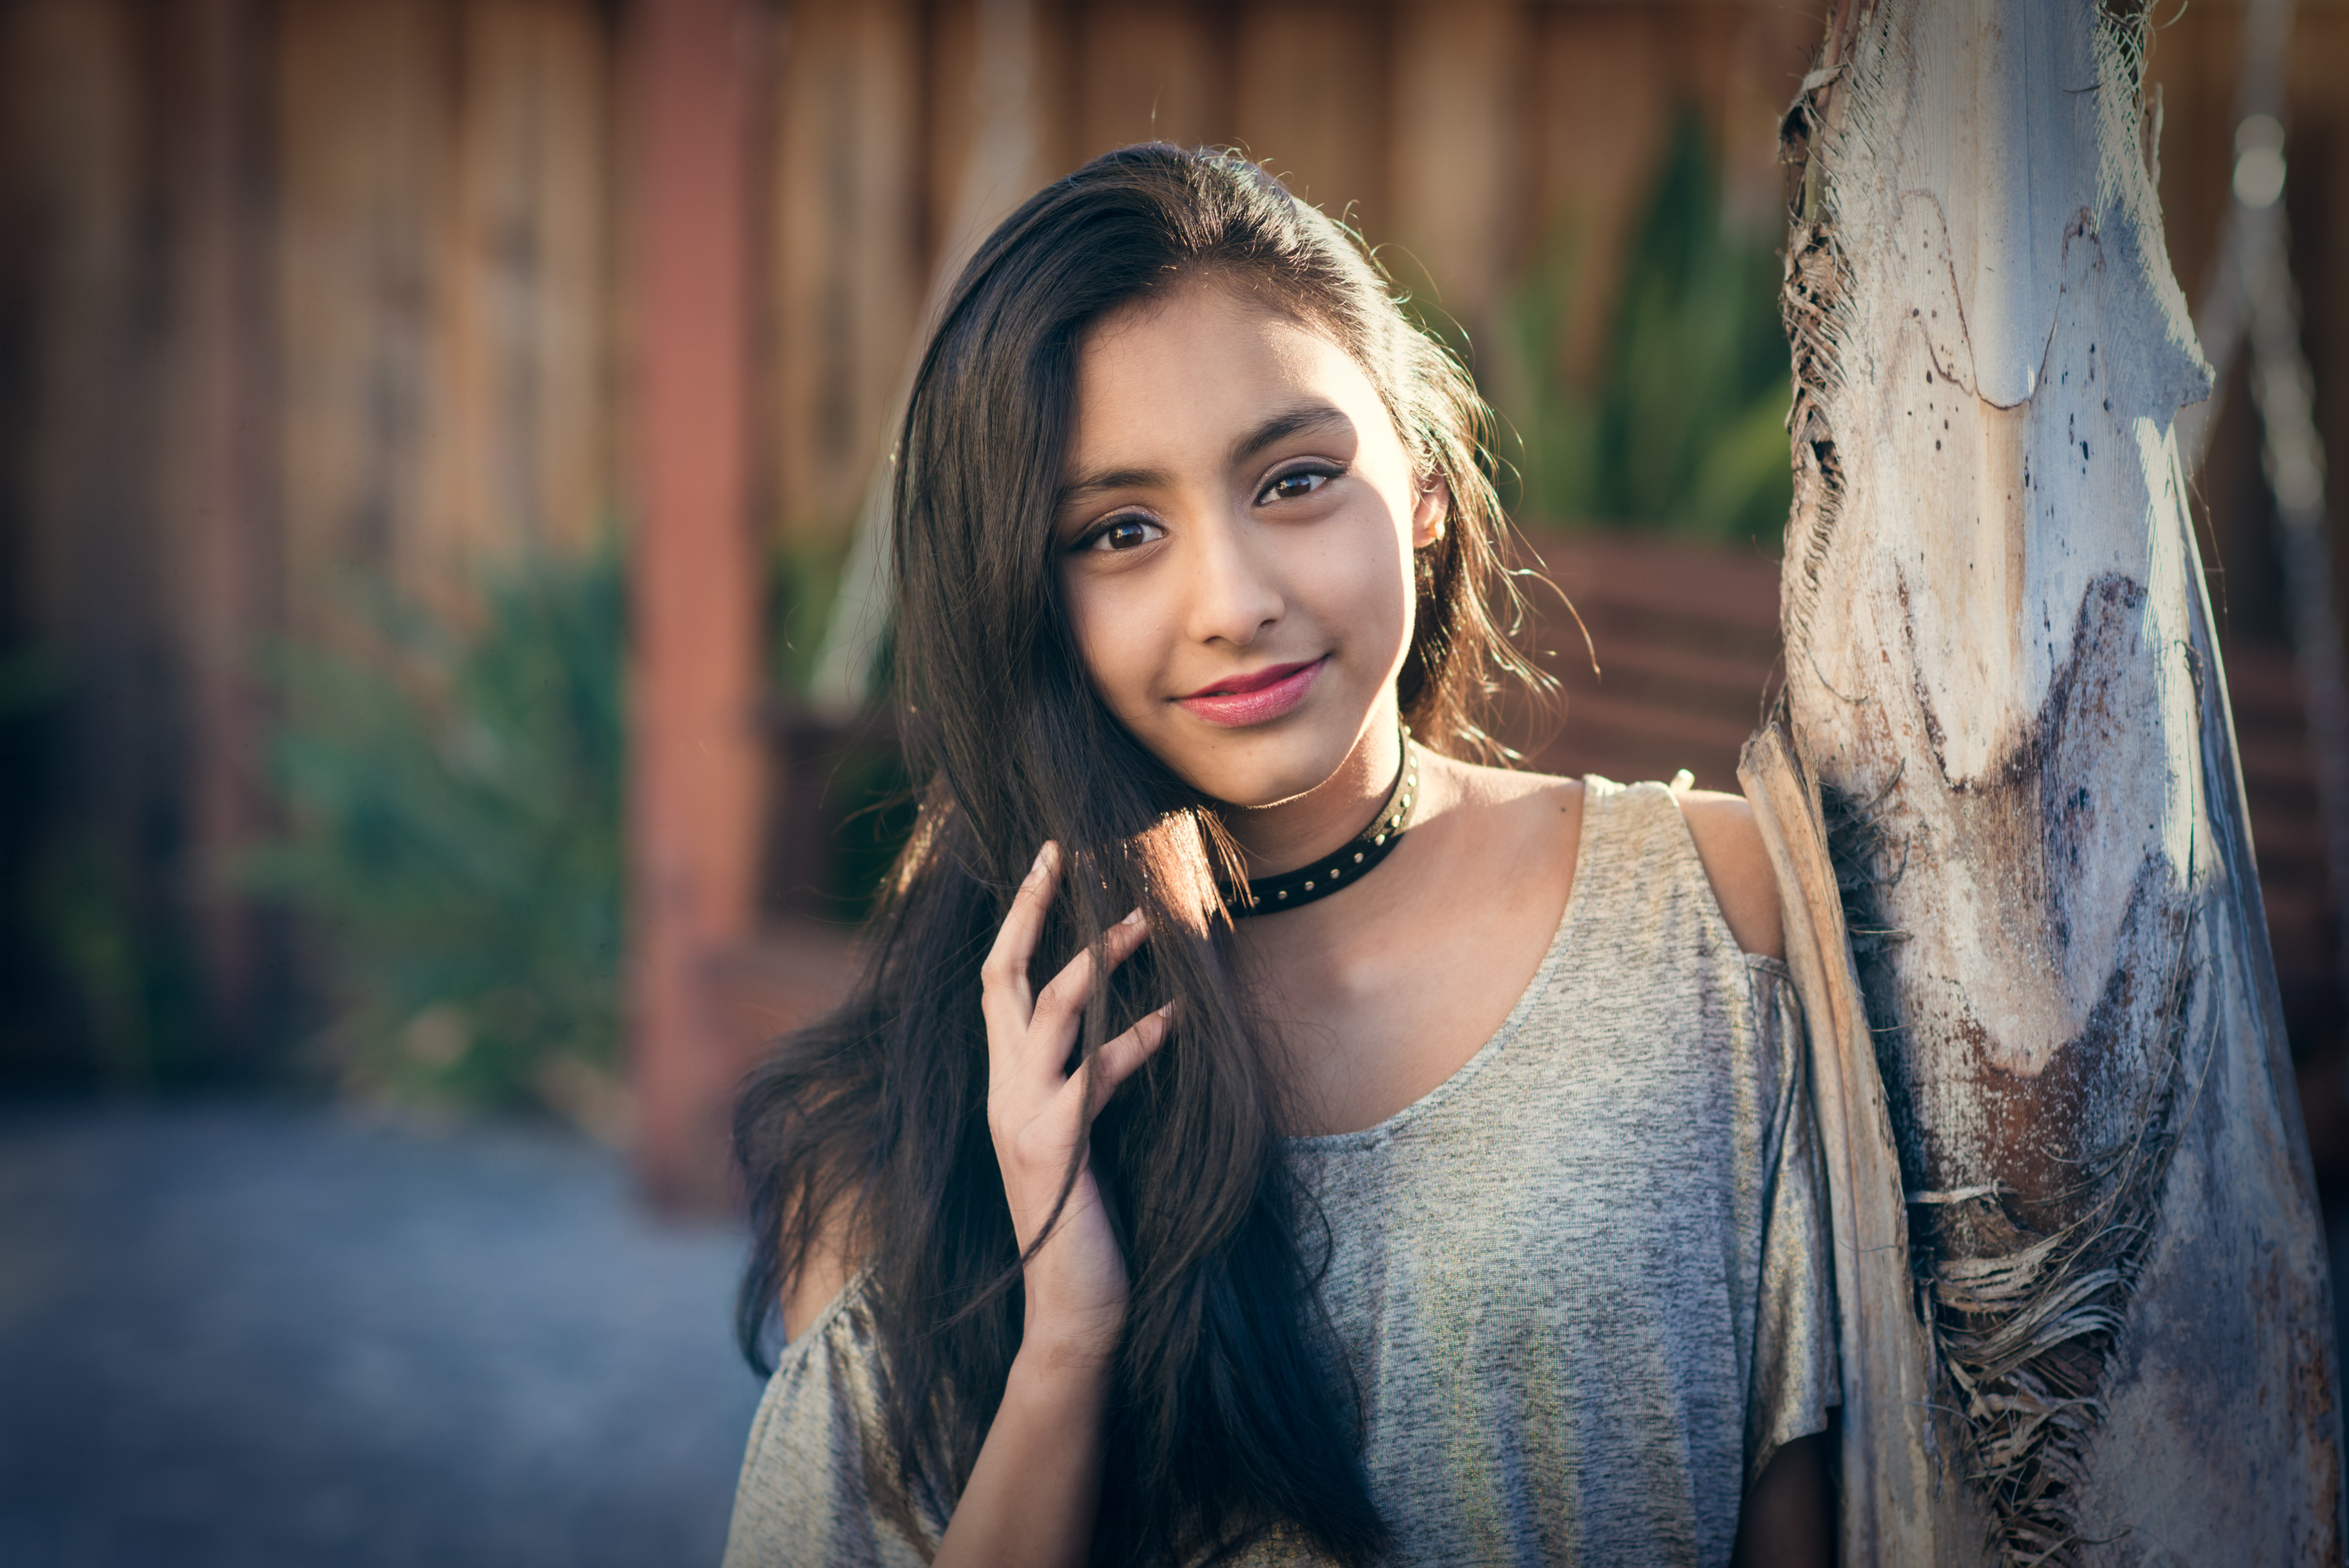 Using Music to Spread Inspiration - Independent Pop Artist, Hitha